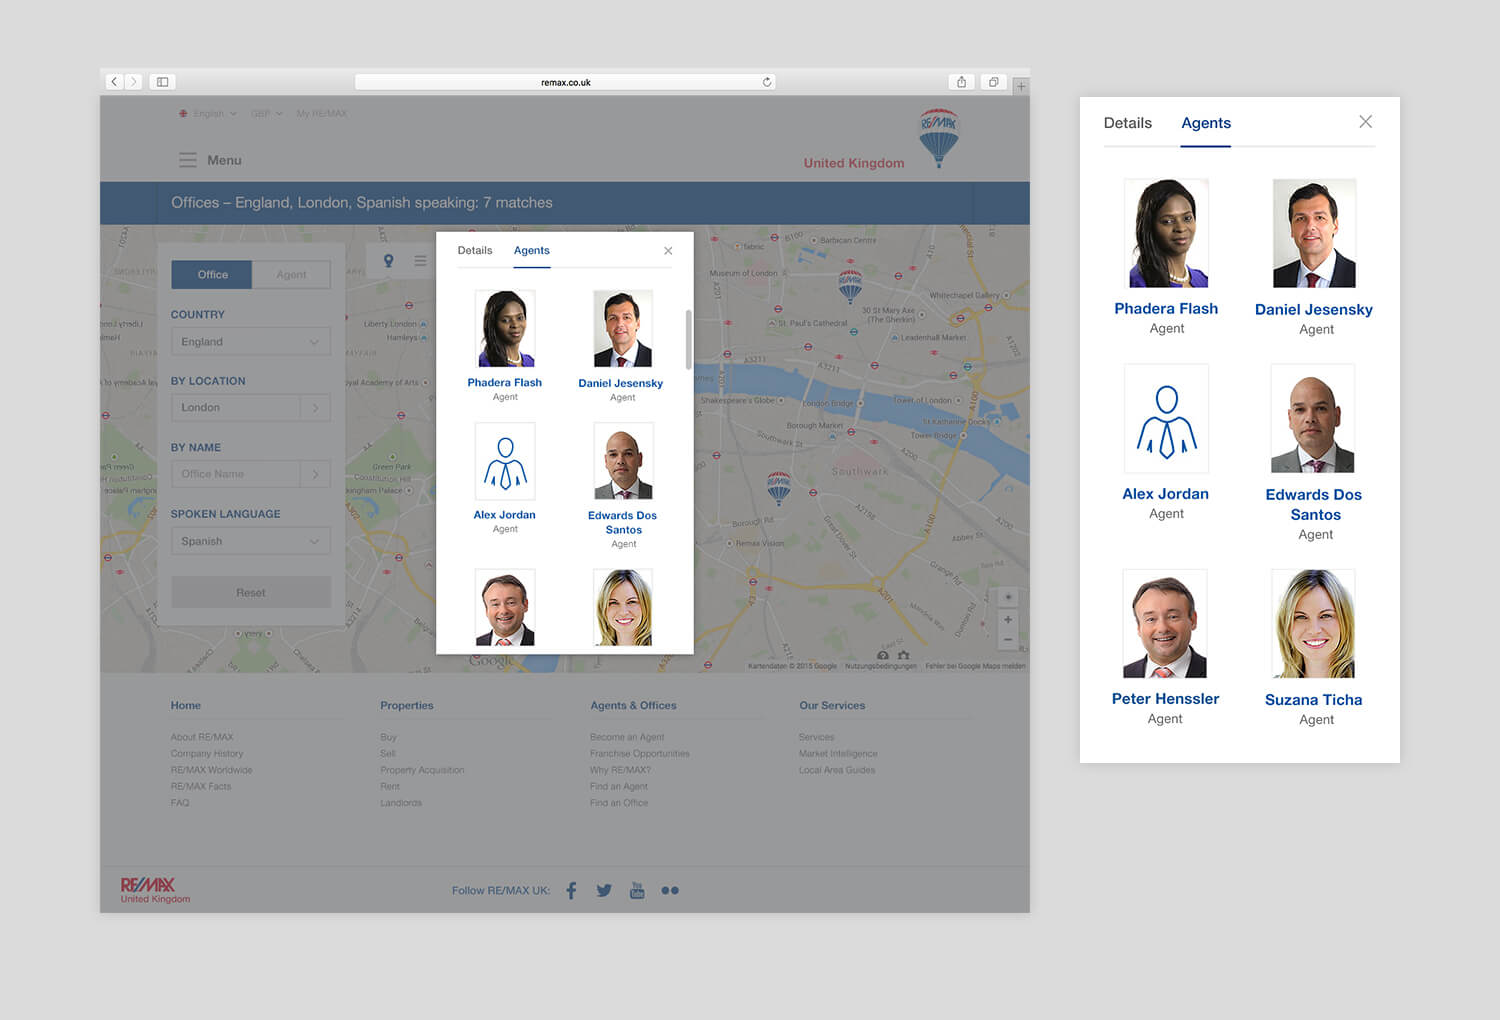 Remax_Agent+OfficeSearch+Desktop+Mobile_032